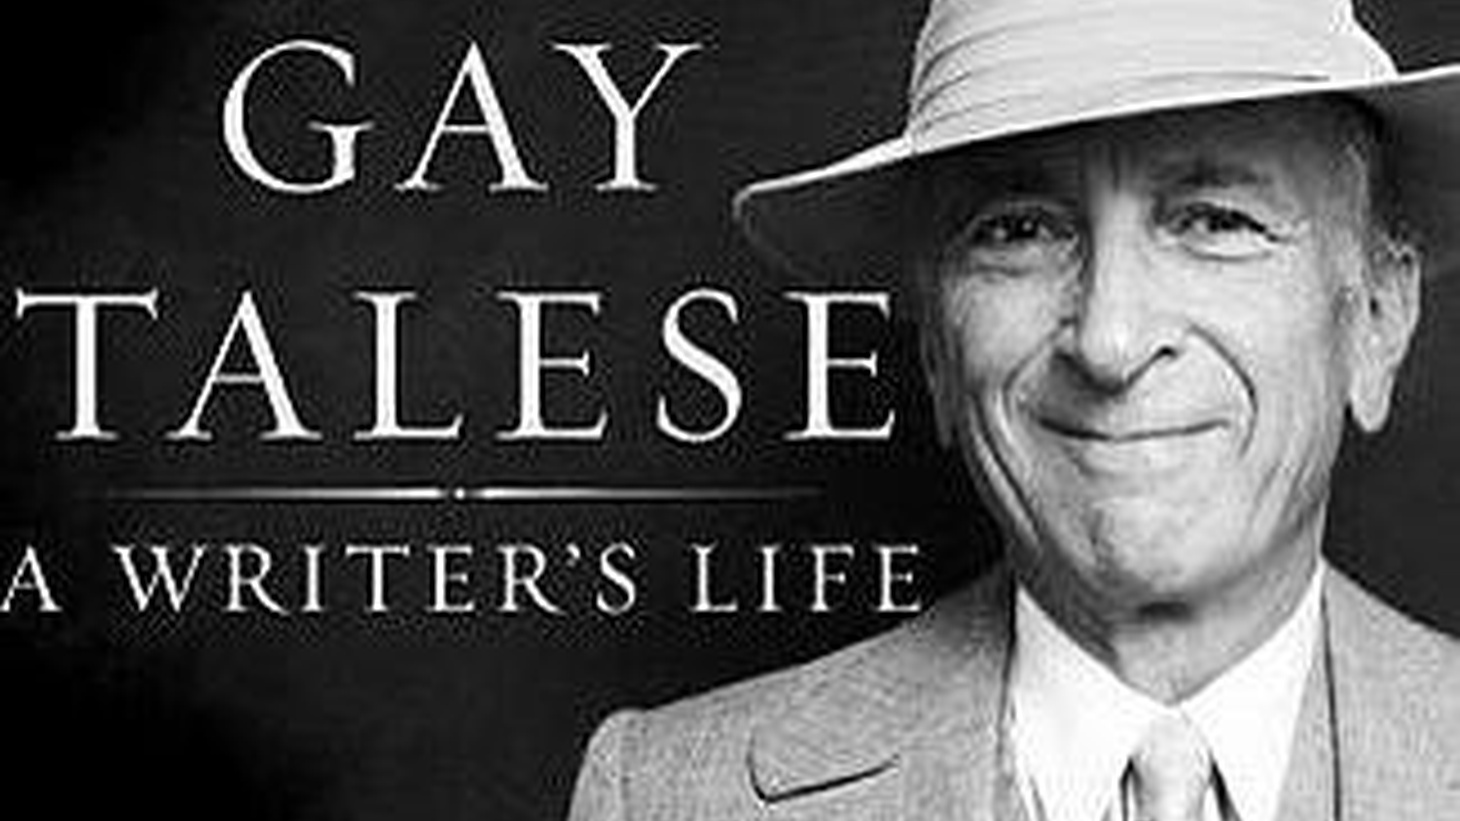 Writer Gay Talese's fame as a journalist began with his fine profiles for Esquire and continued with non-fiction books such as Honor Thy Father and Thy Neighbor's Wife. With his new book, A Writer's Life, he turns his eye on himself.